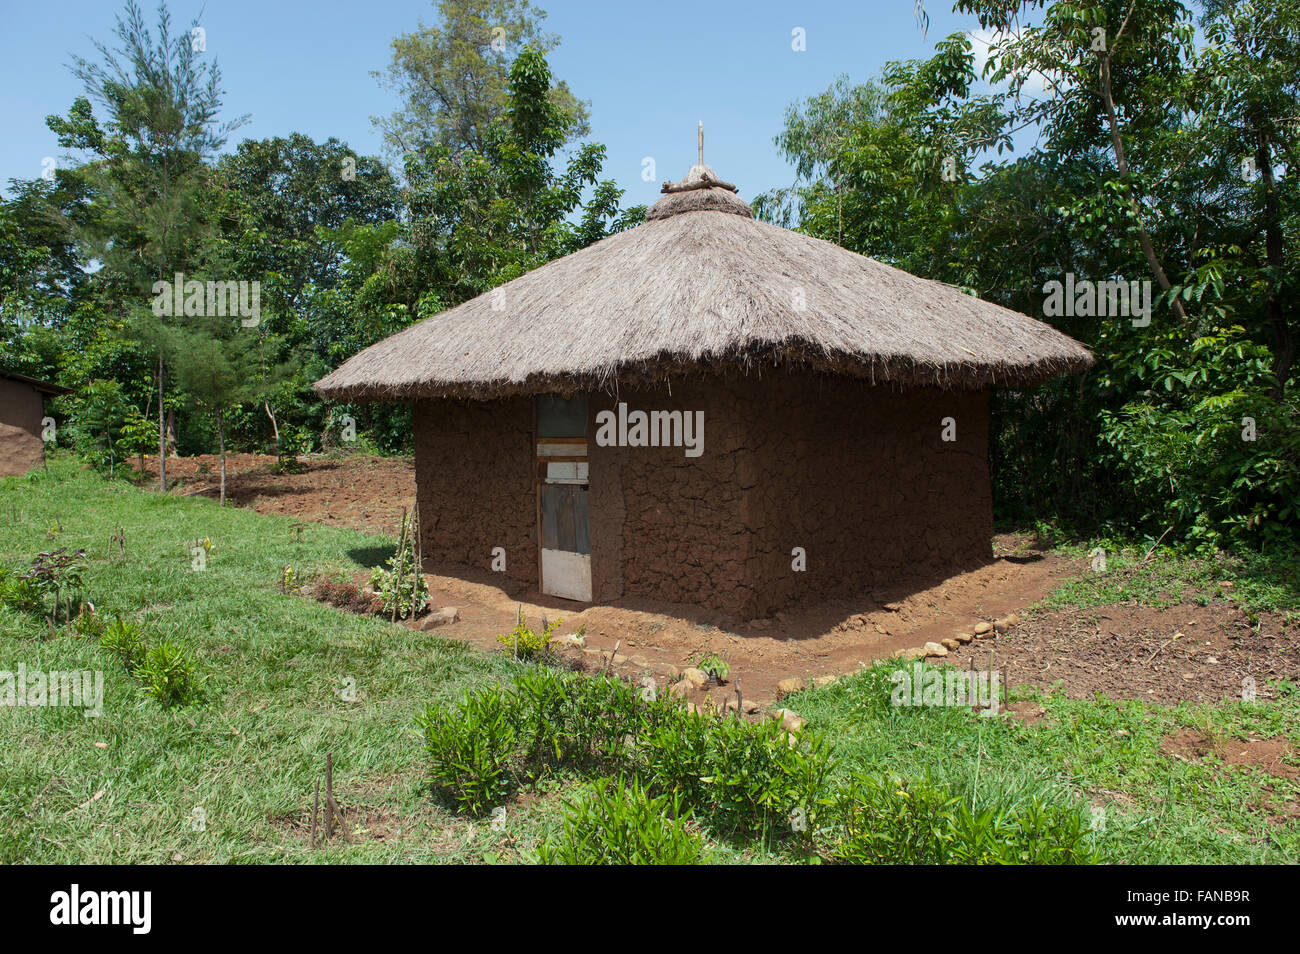 Home made from mud with a thatched roof with a neat garden in rural kenya